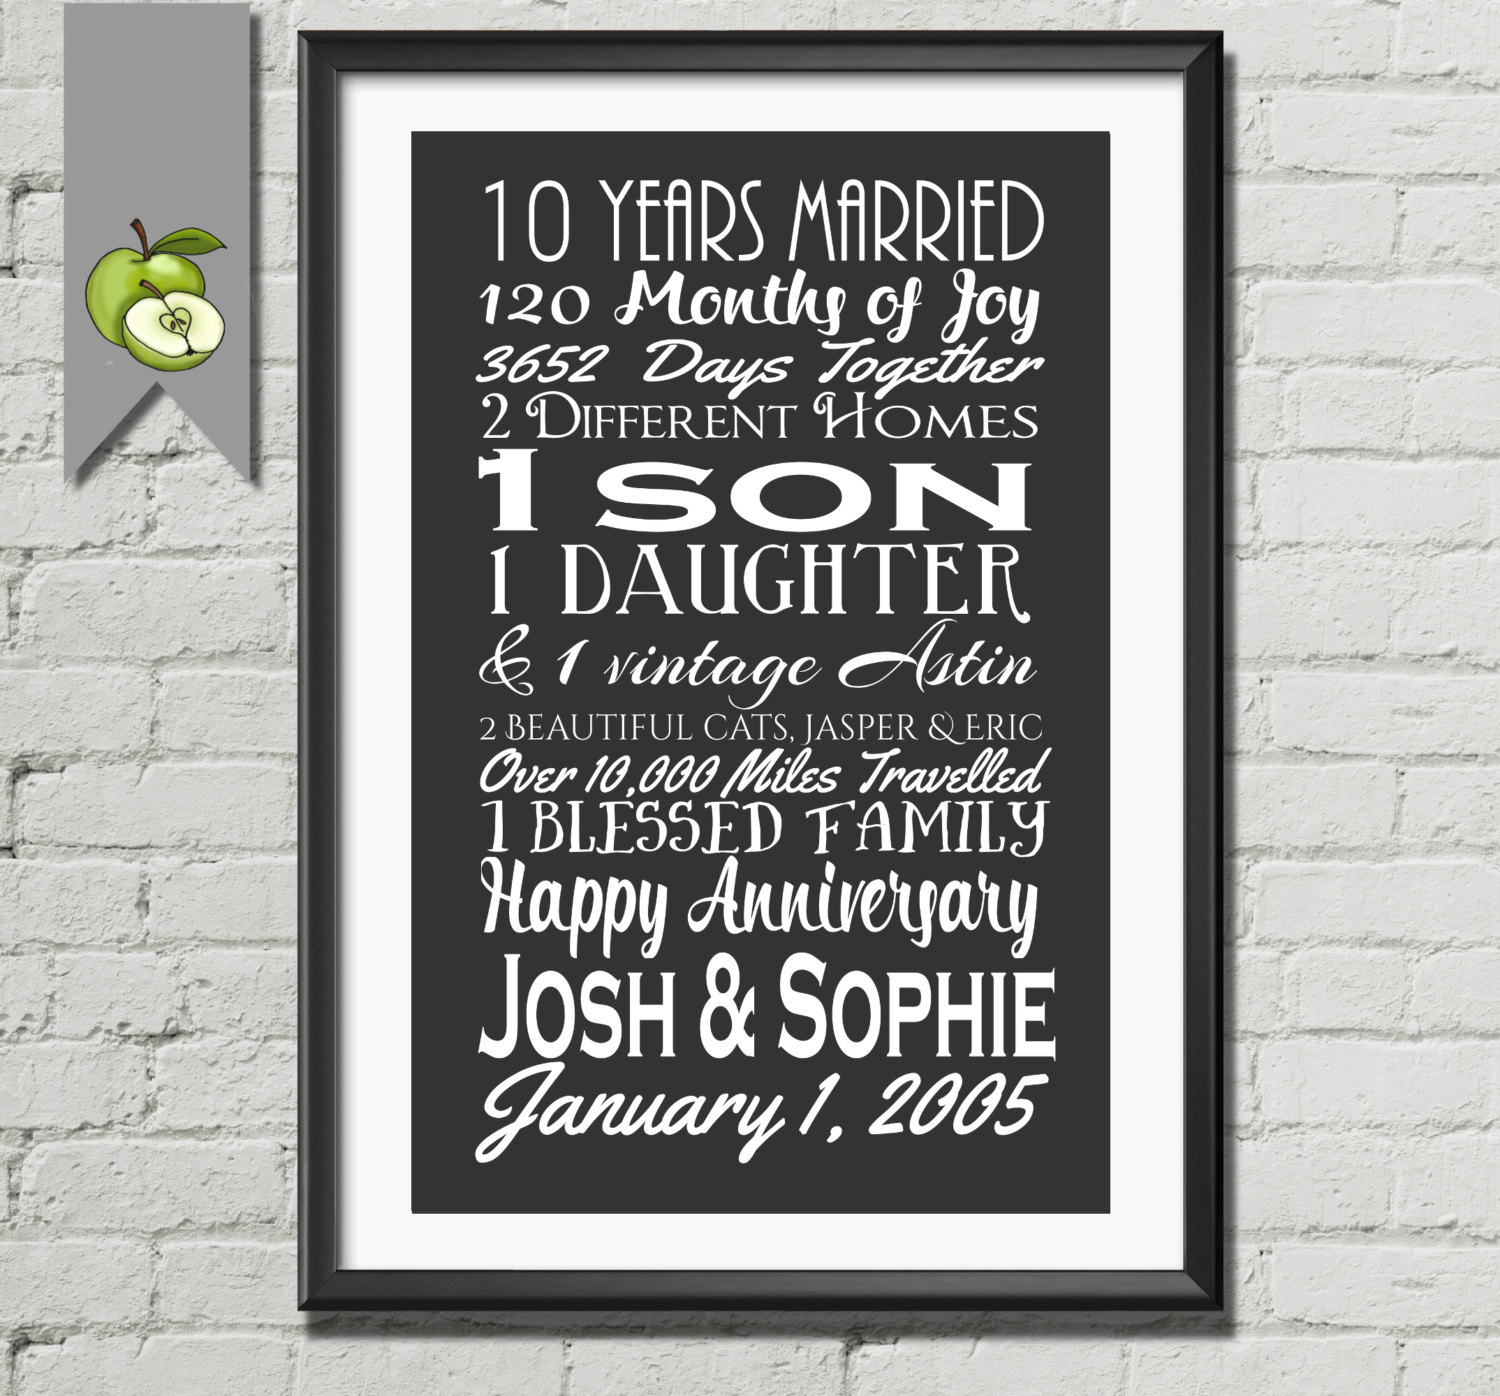 Gifts For 10th Wedding Anniversary For The Couple: 10th Anniversary Gift Tenth Anniversary Gift Wife Husband